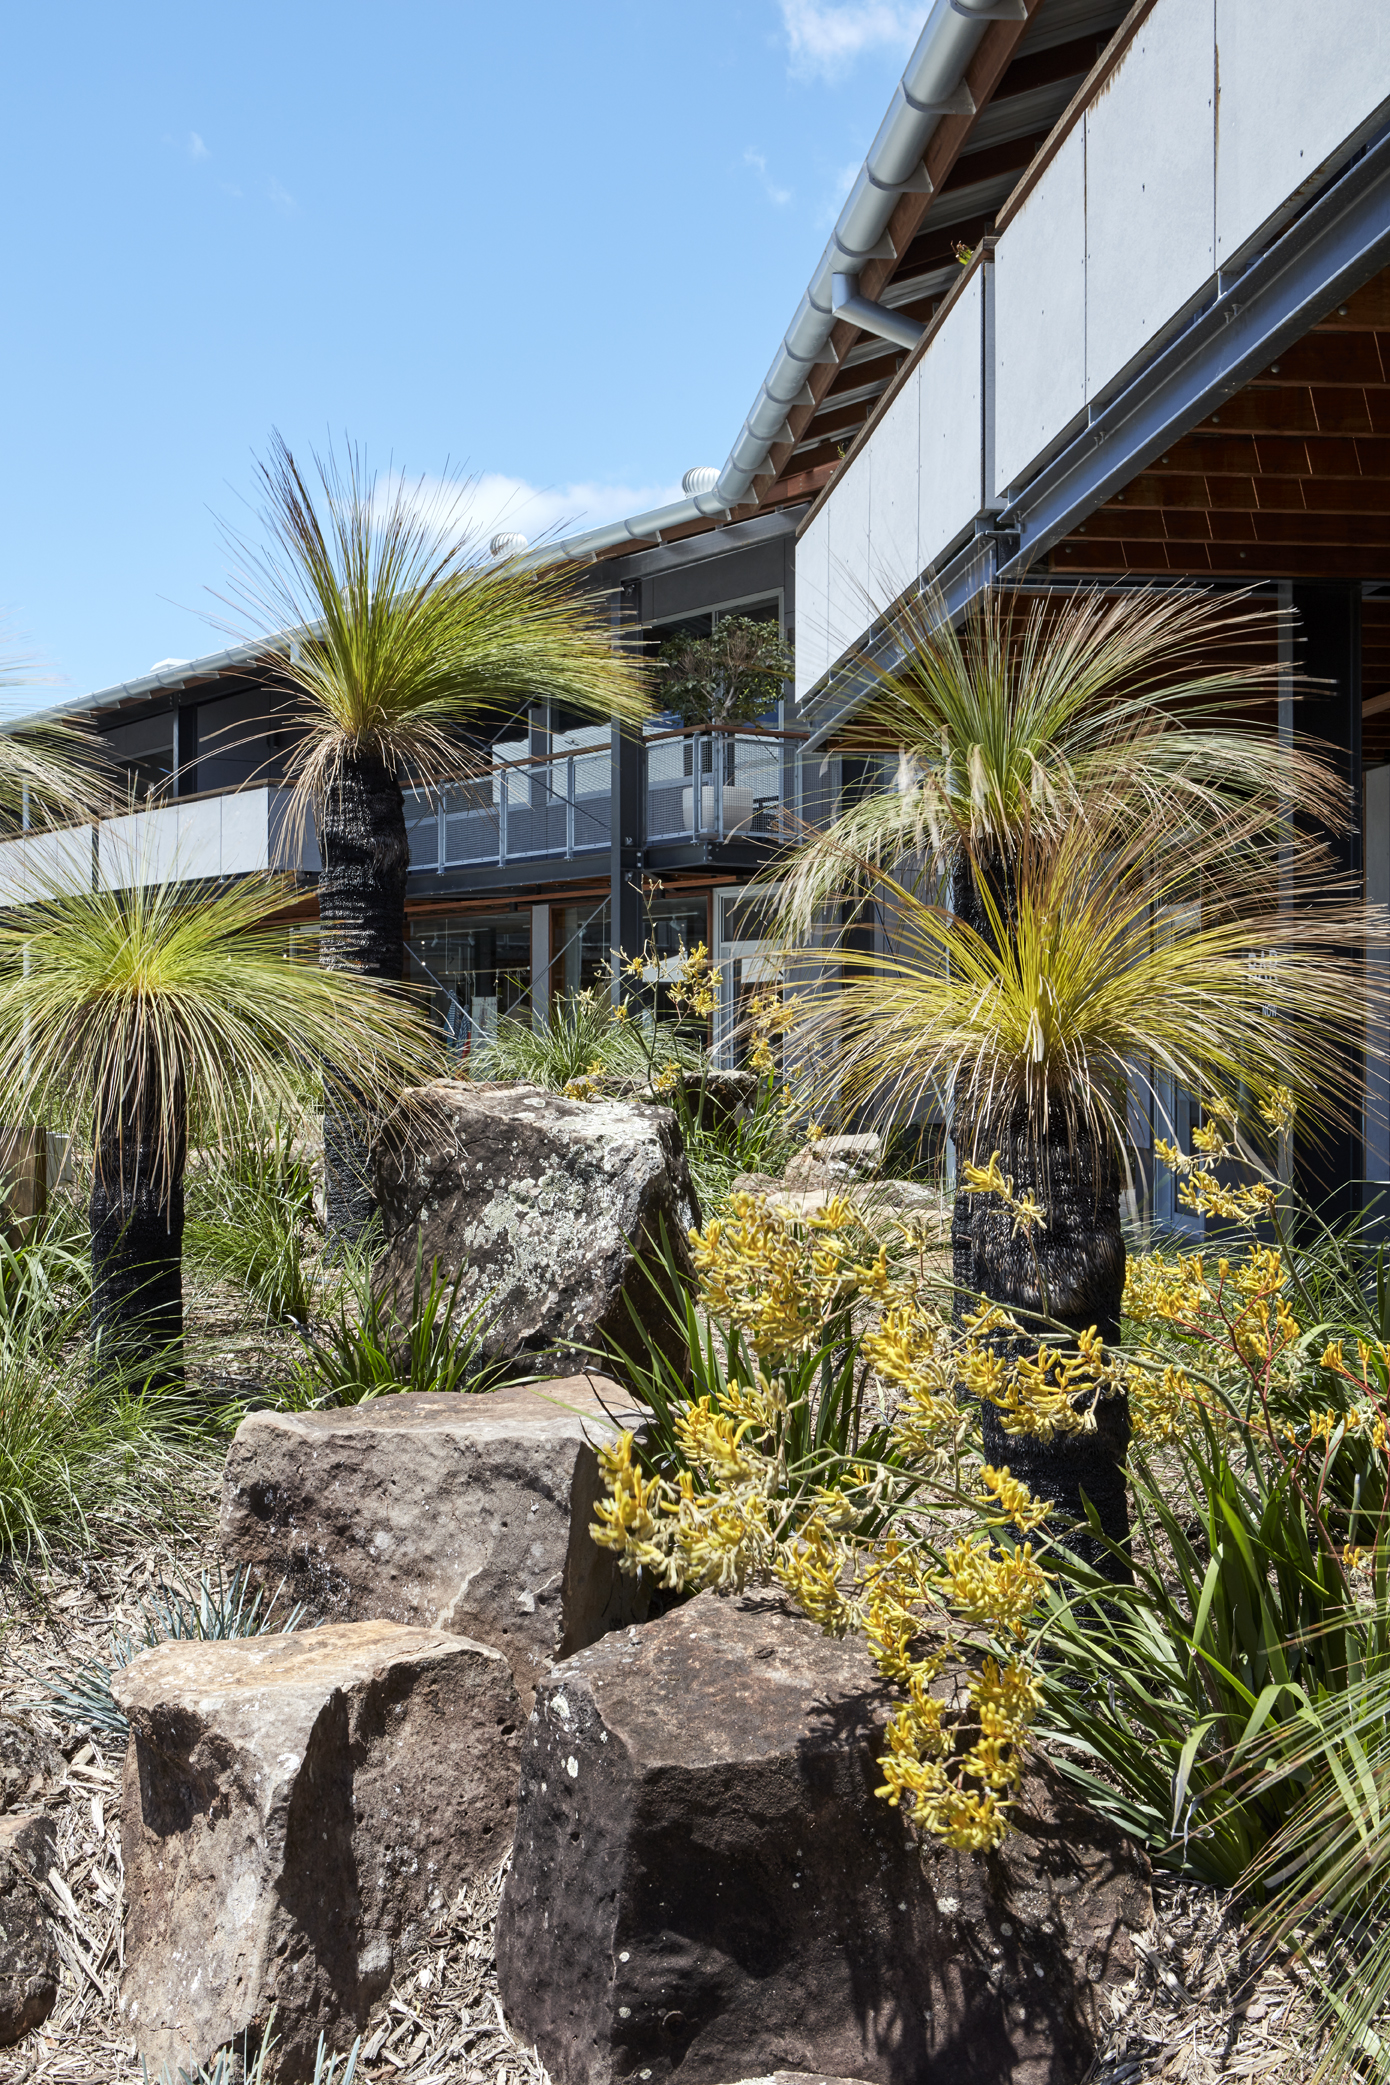 3. The landscaping - Hear me out. It's incredible. You will be inspired by the tropical native garden vibes. Just trust us. If you appreciate foliage as much as we do… just have a look around. There is our favourite spear grass, kangaroo paw combo just outside our window.